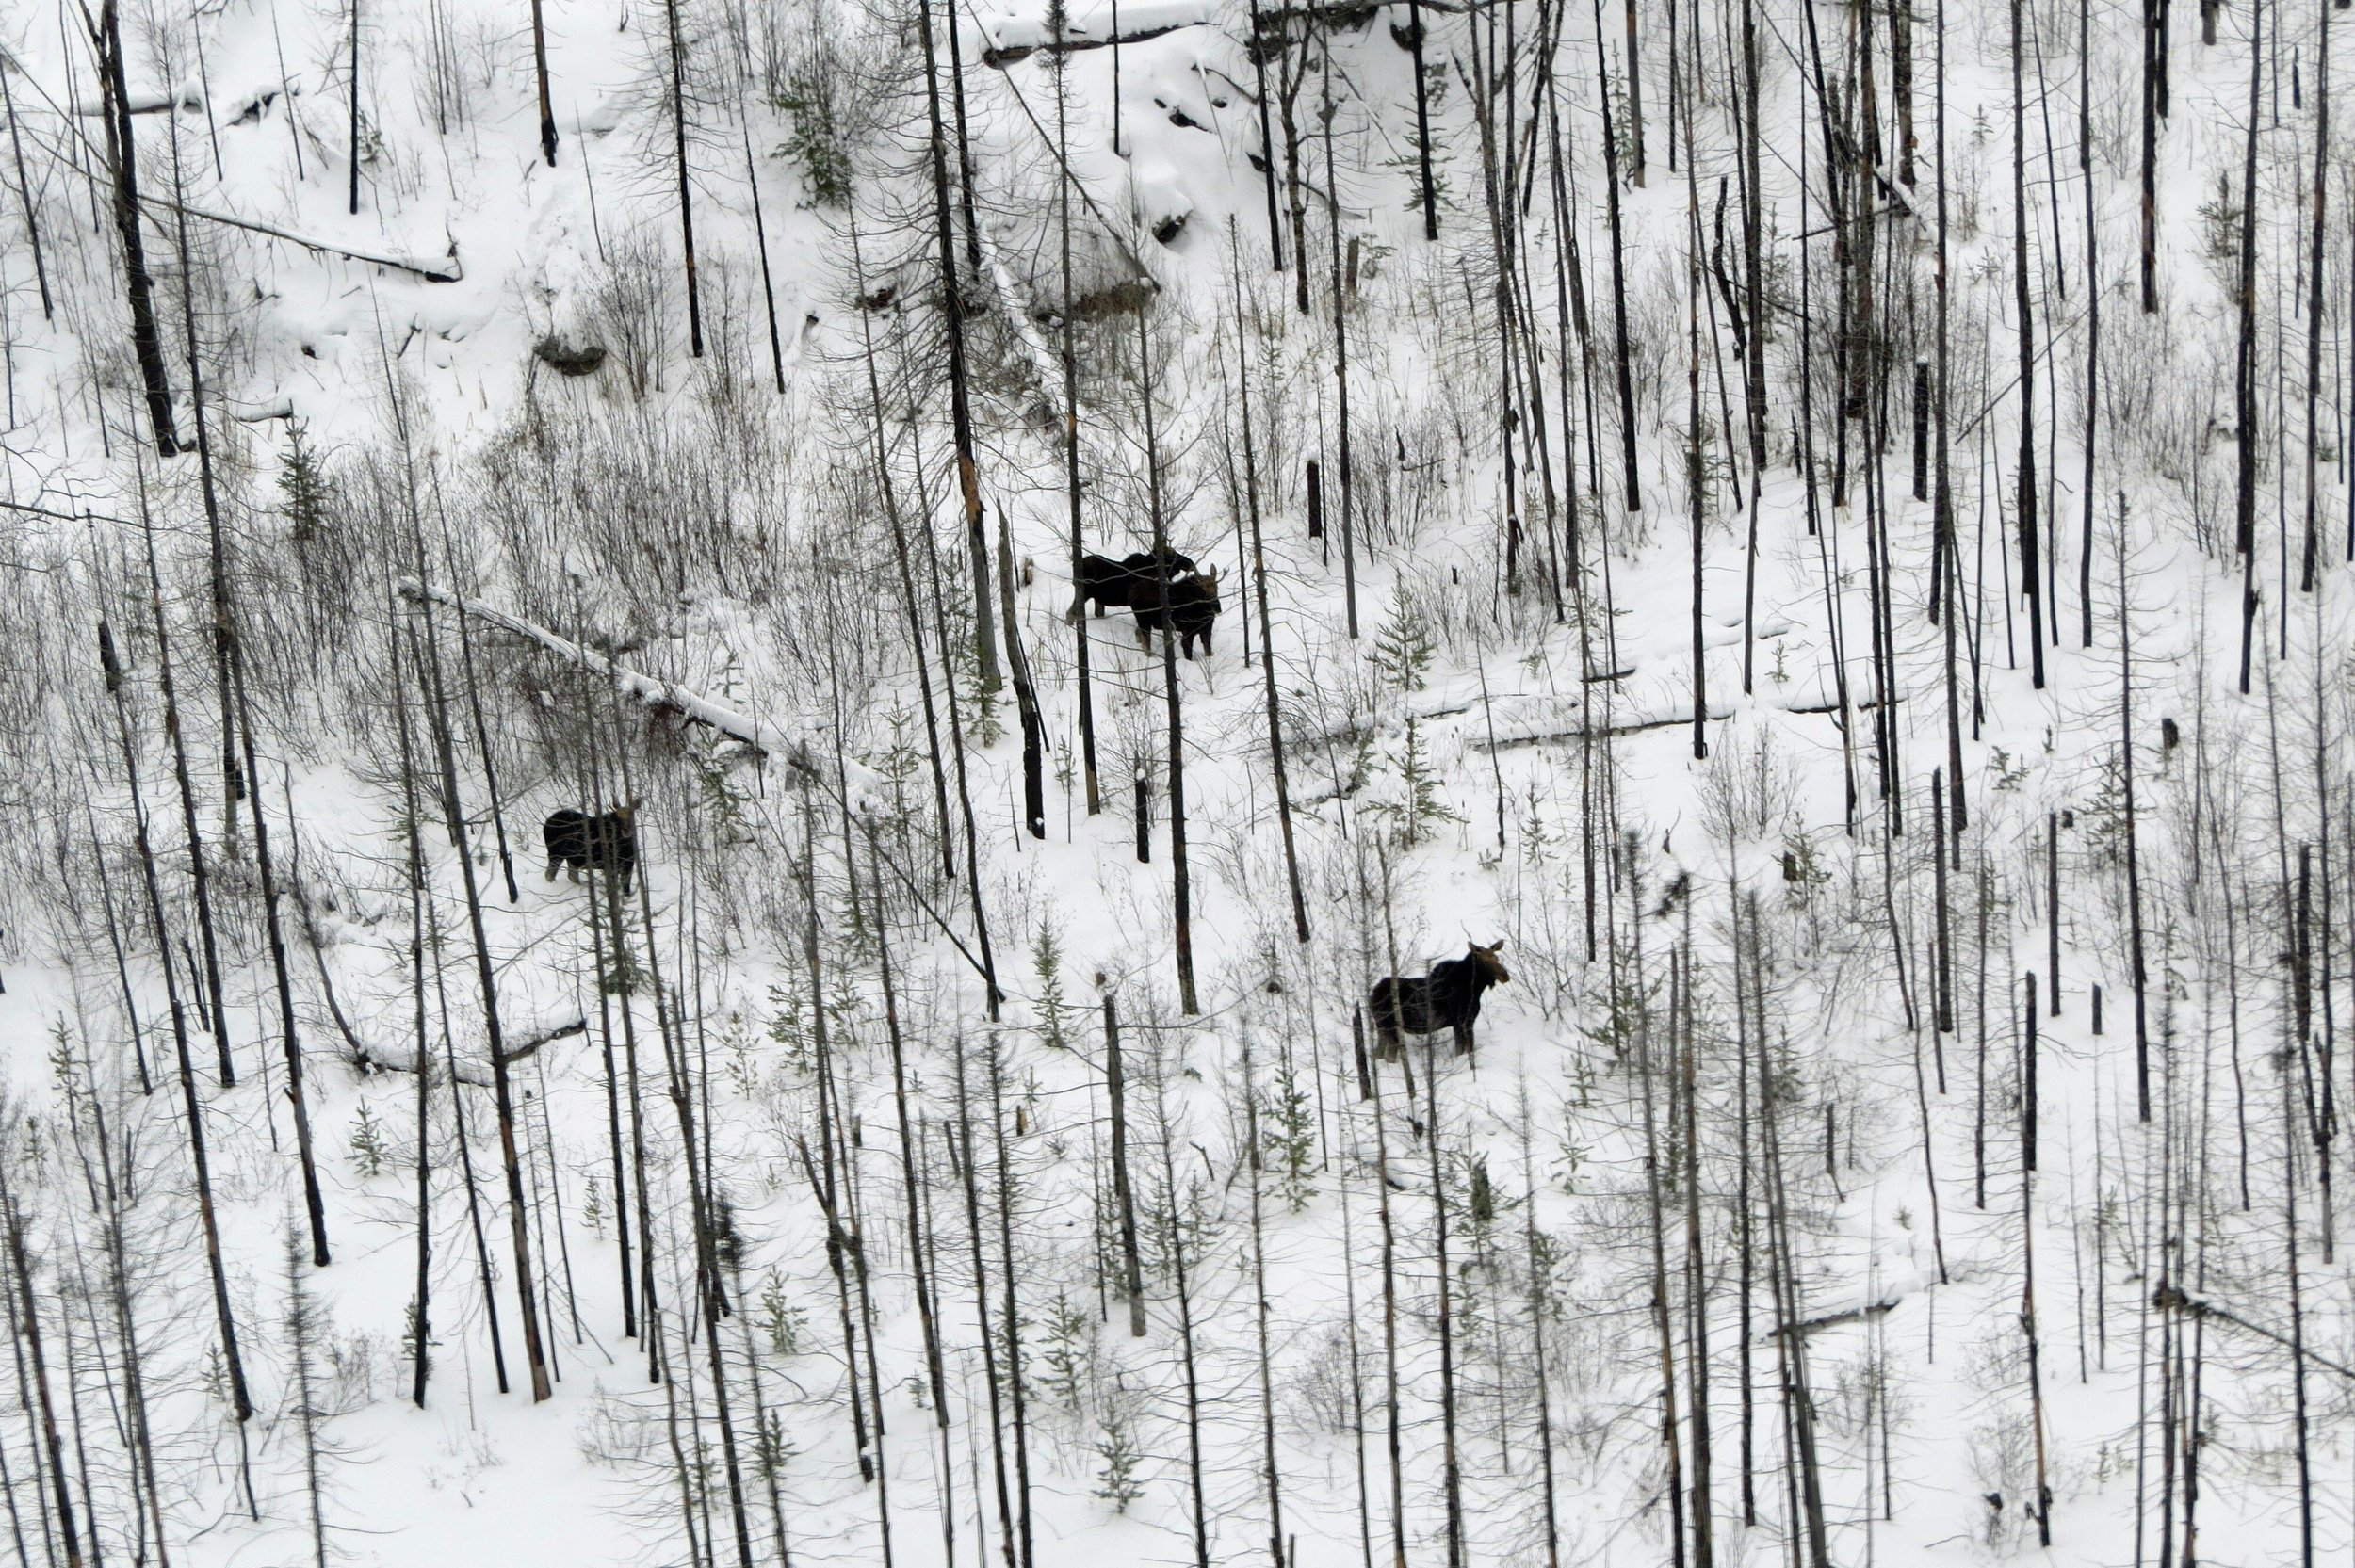 Four moose photographed during the Minnesota DNR's 2019 winter survey conducted in January. These moose were in the Pagami Creek fire area that burned in a 2011 wildlfire, creating perfect moose habitat. Photo by Mike Schrage